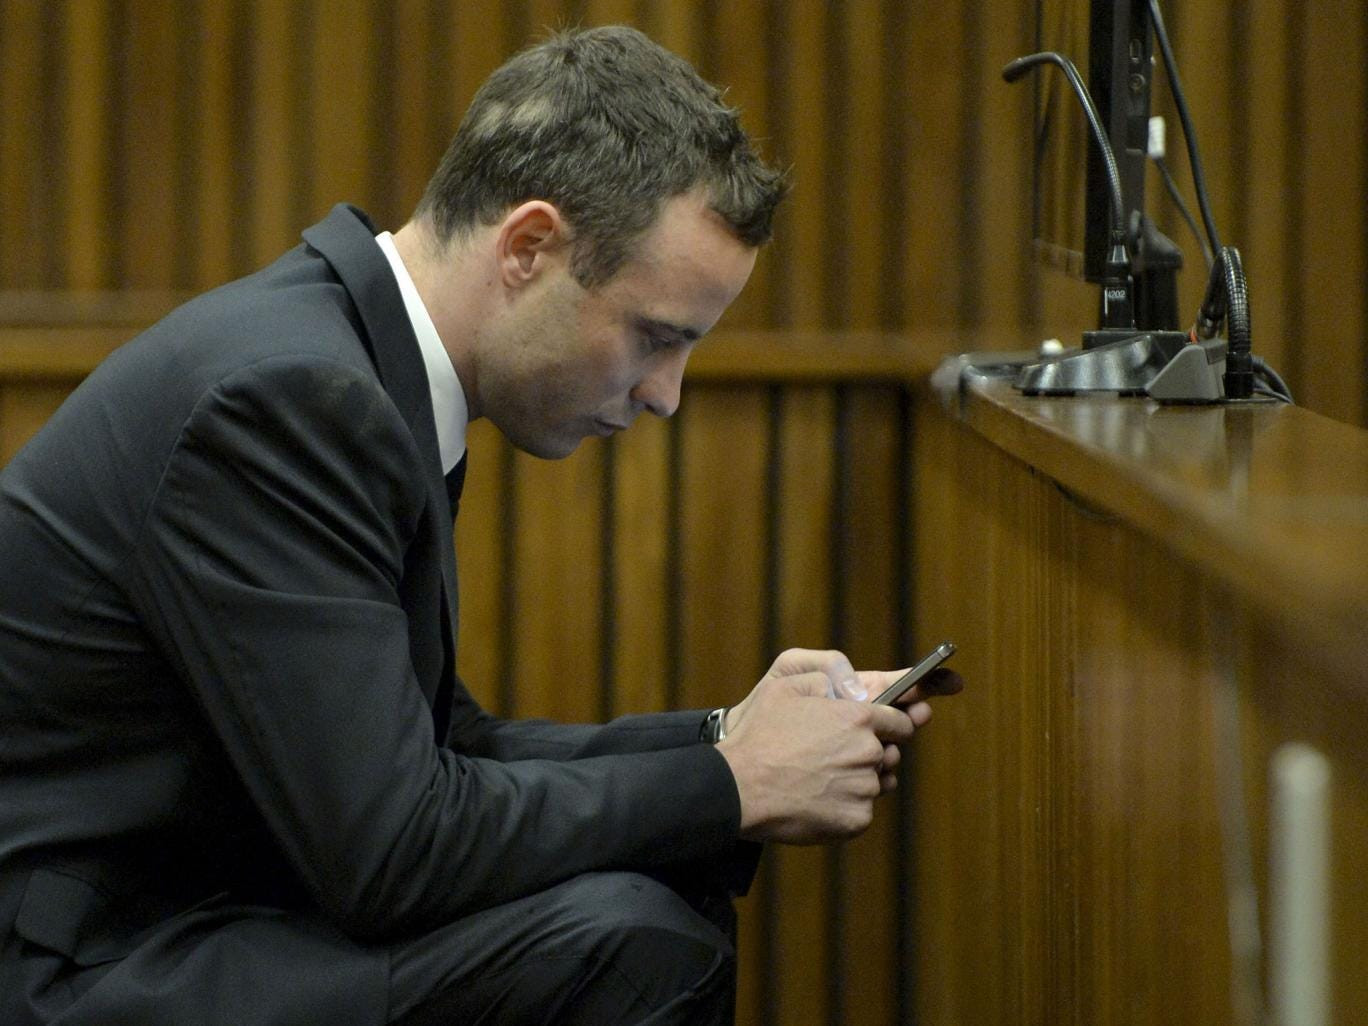 Pistorius posted four bizarre tweets across Sunday night and Monday morning